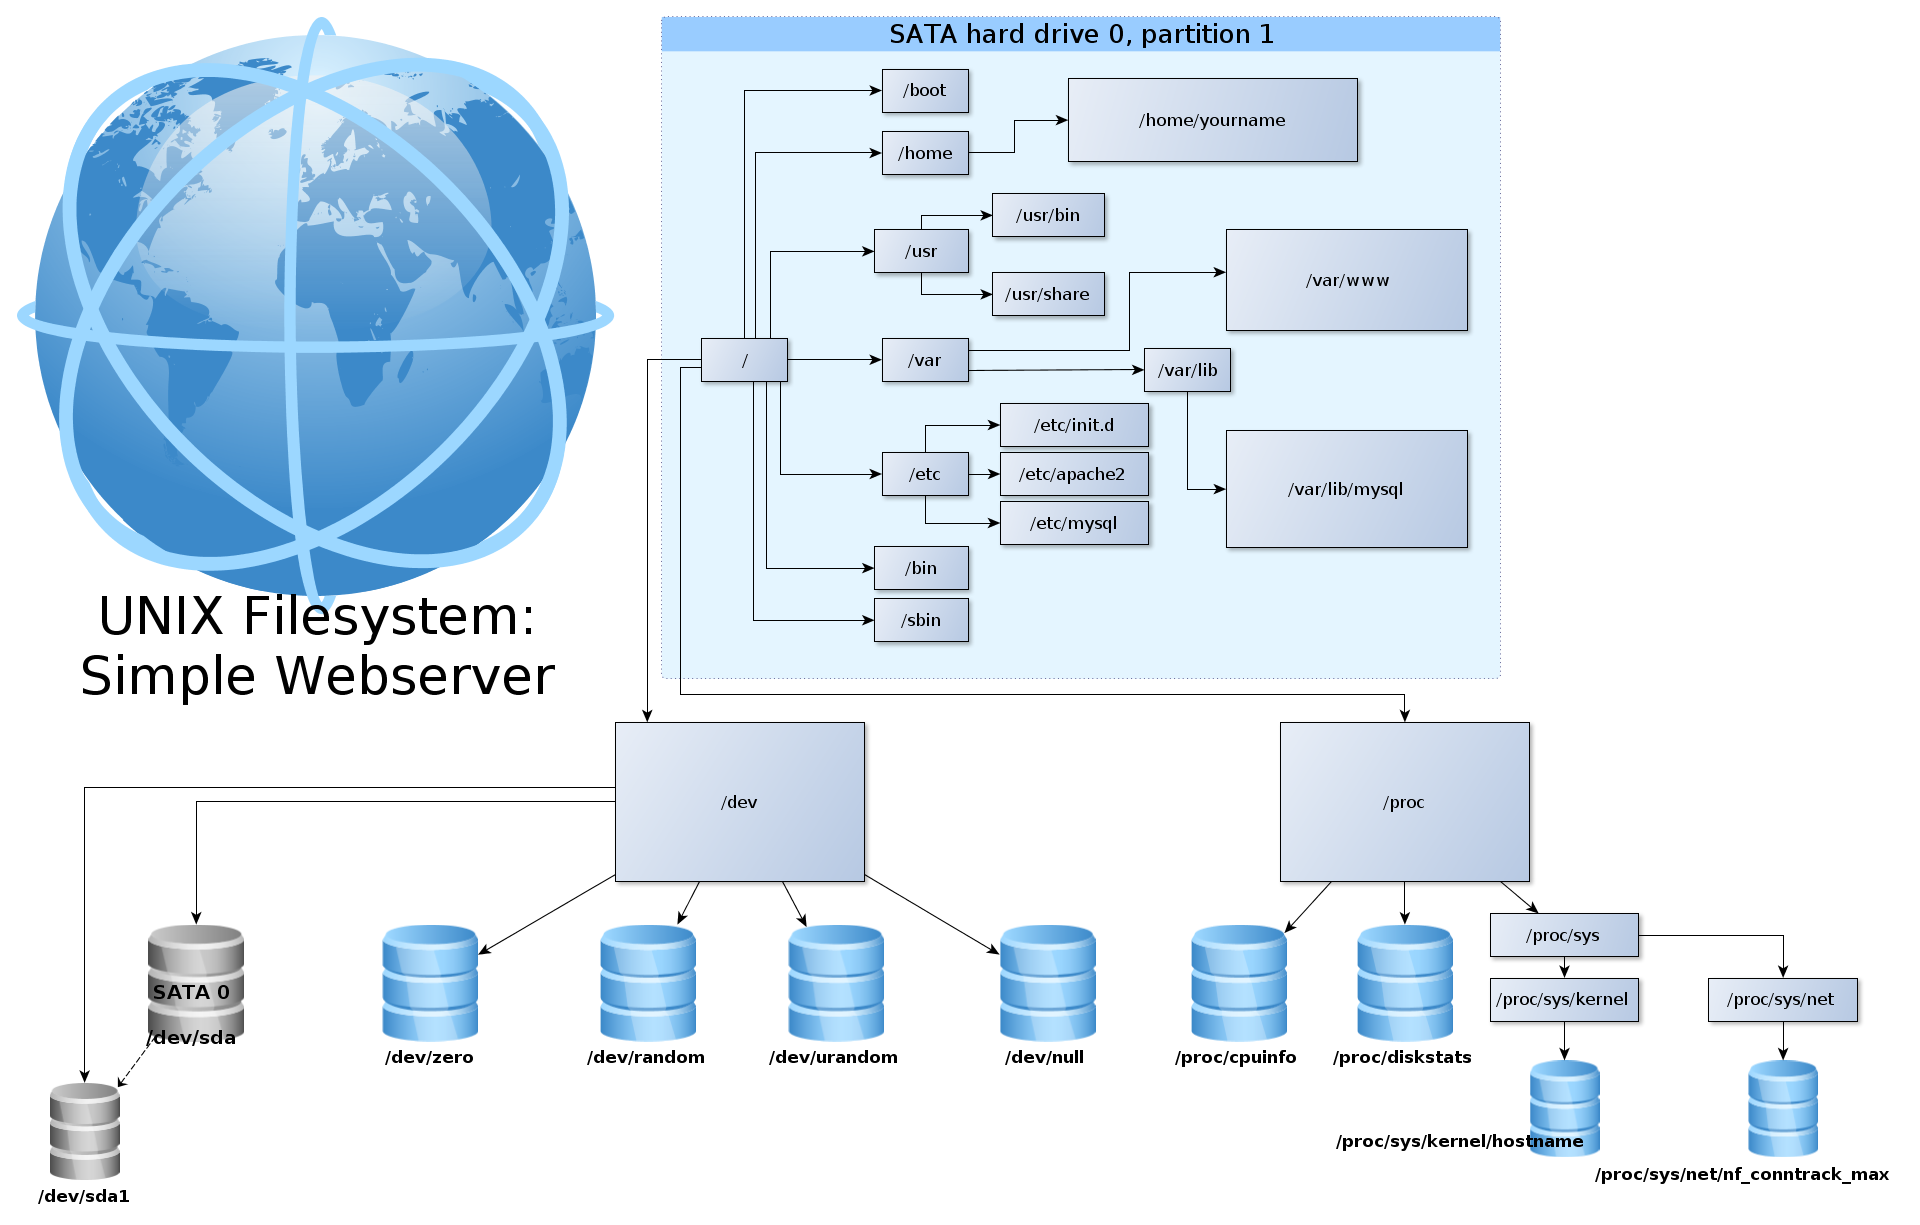 an analysis of the job of the fisrt operating system the unix file system The universal file system (ufs) is one of the most popular file systems used on unix platforms it is used in solaris 1 and 2 operating systems (sun) hp-ux version 9 and 10 (hp), sinix 5 (siemens), icl unix (icl) and many others ufs was developed at the university of california at berkeley in version 43 bsd unix [4] ufs is a redesign of.